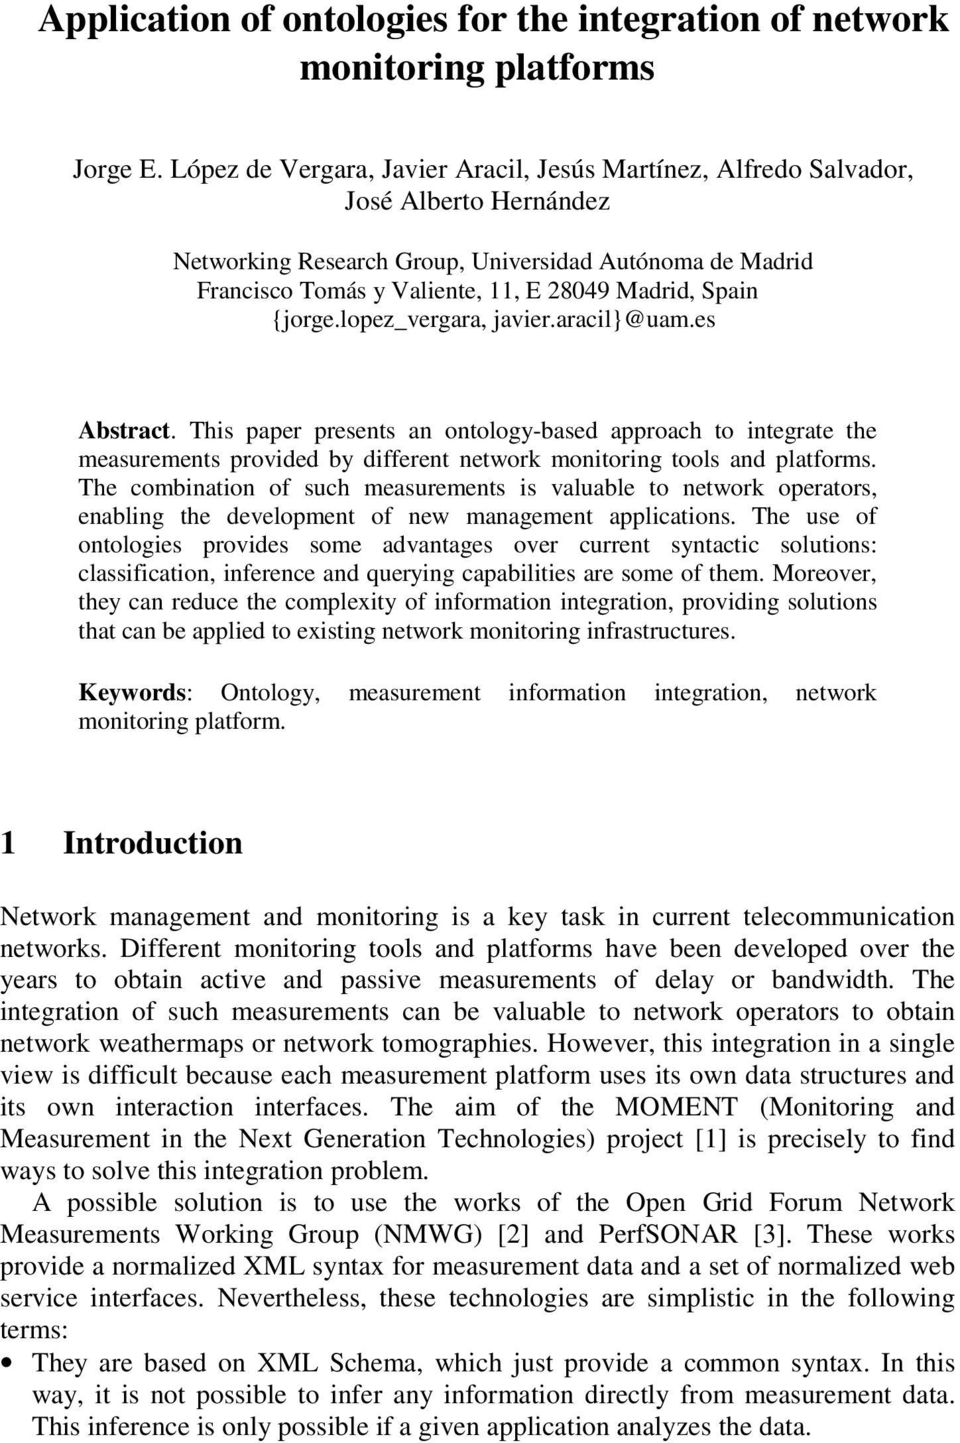 Spain {jorge.lopez_vergara, javier.aracil}@uam.es Abstract. This paper presents an ontology-based approach to integrate the measurements provided by different network monitoring tools and platforms.